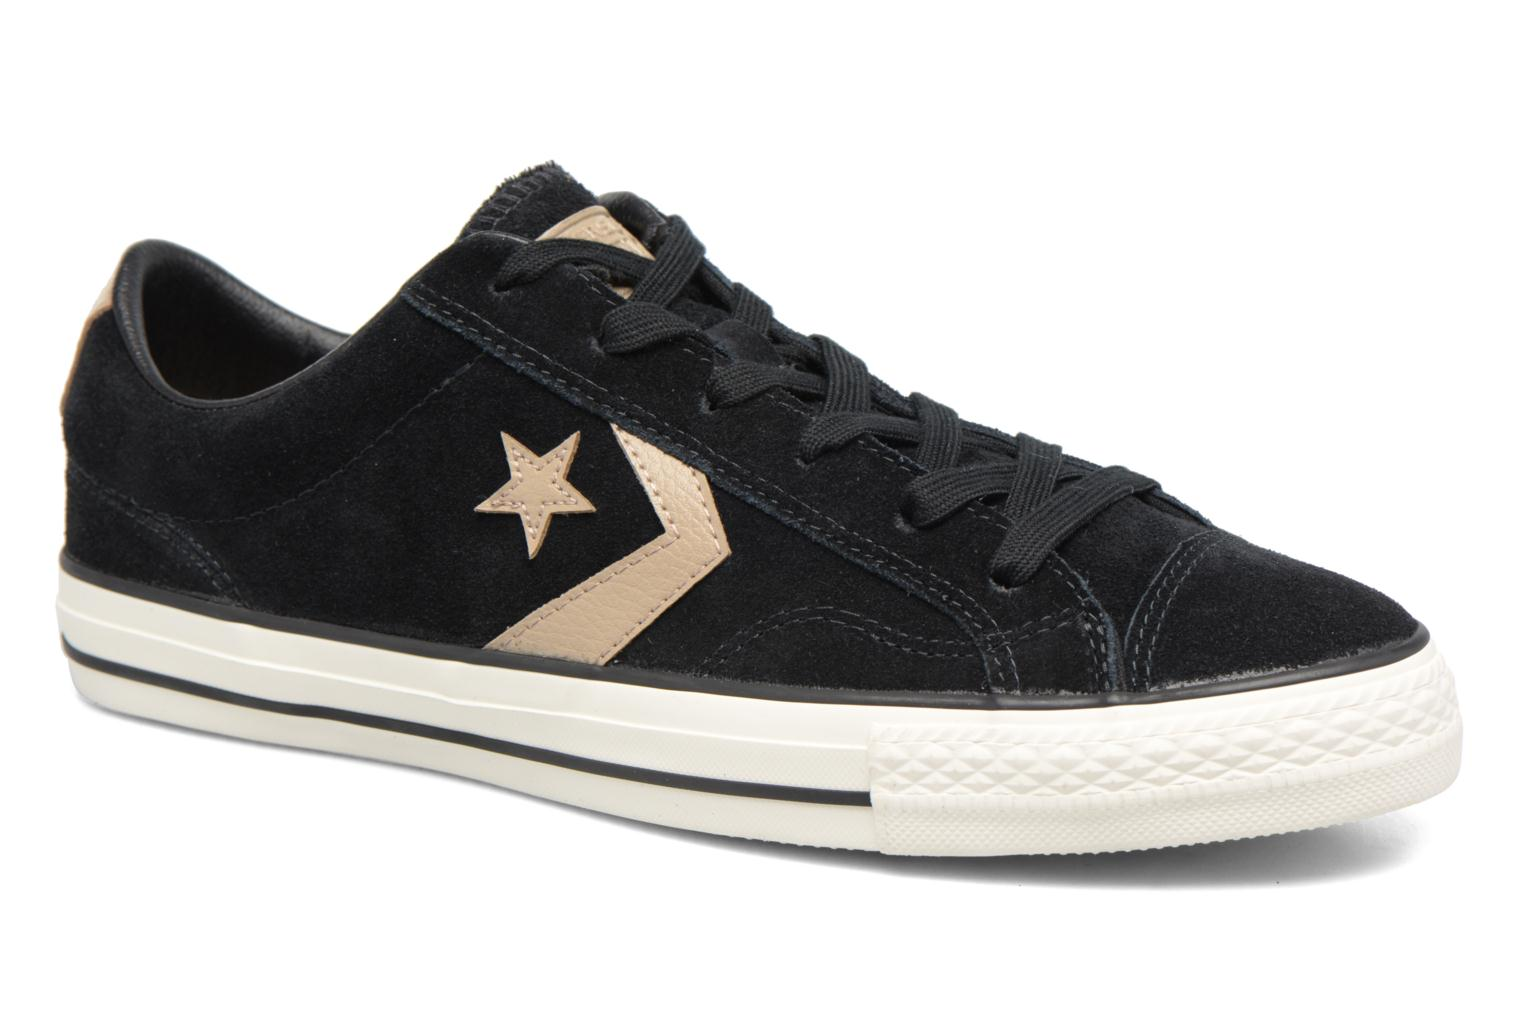 Star Player Modern Suede Ox Black/Khaki/Egret